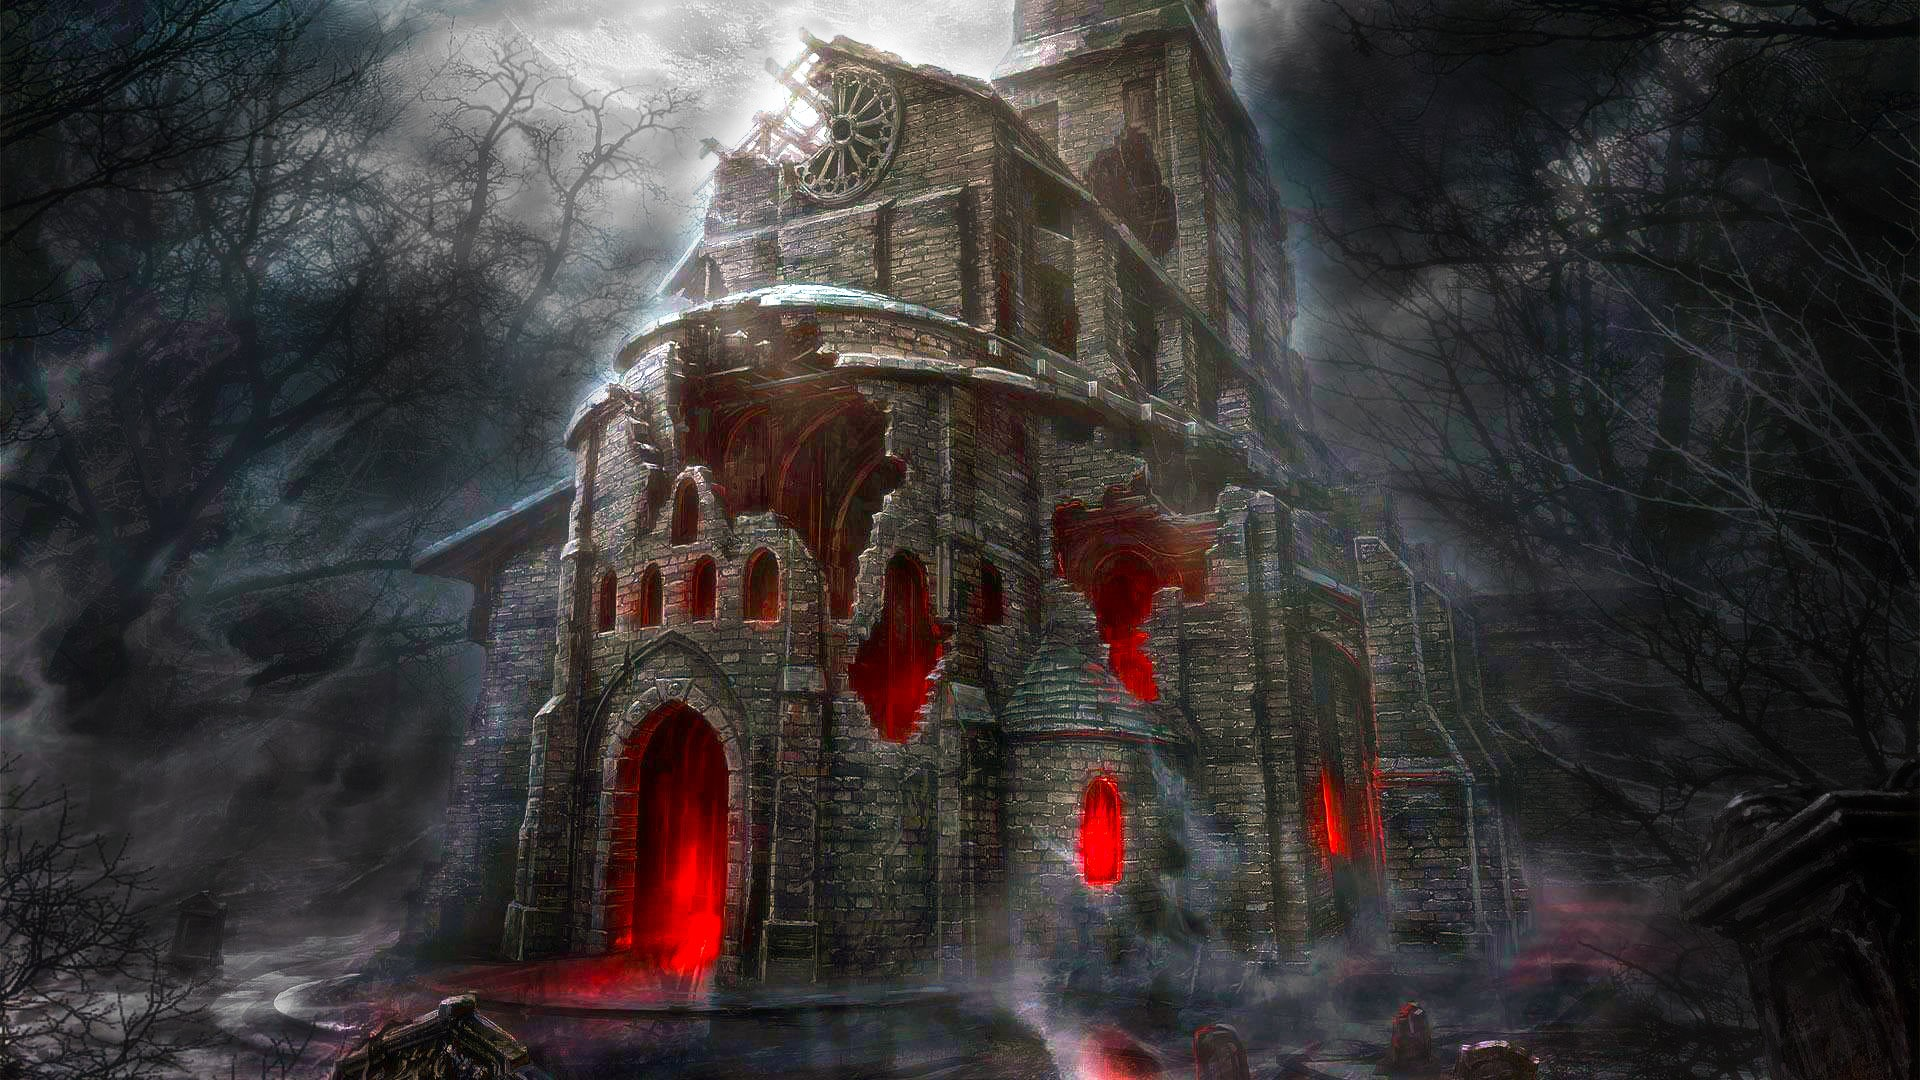 Horror Animated Wallpaper Free Download For Pc: Horror Background ·① Download Free Full HD Backgrounds For